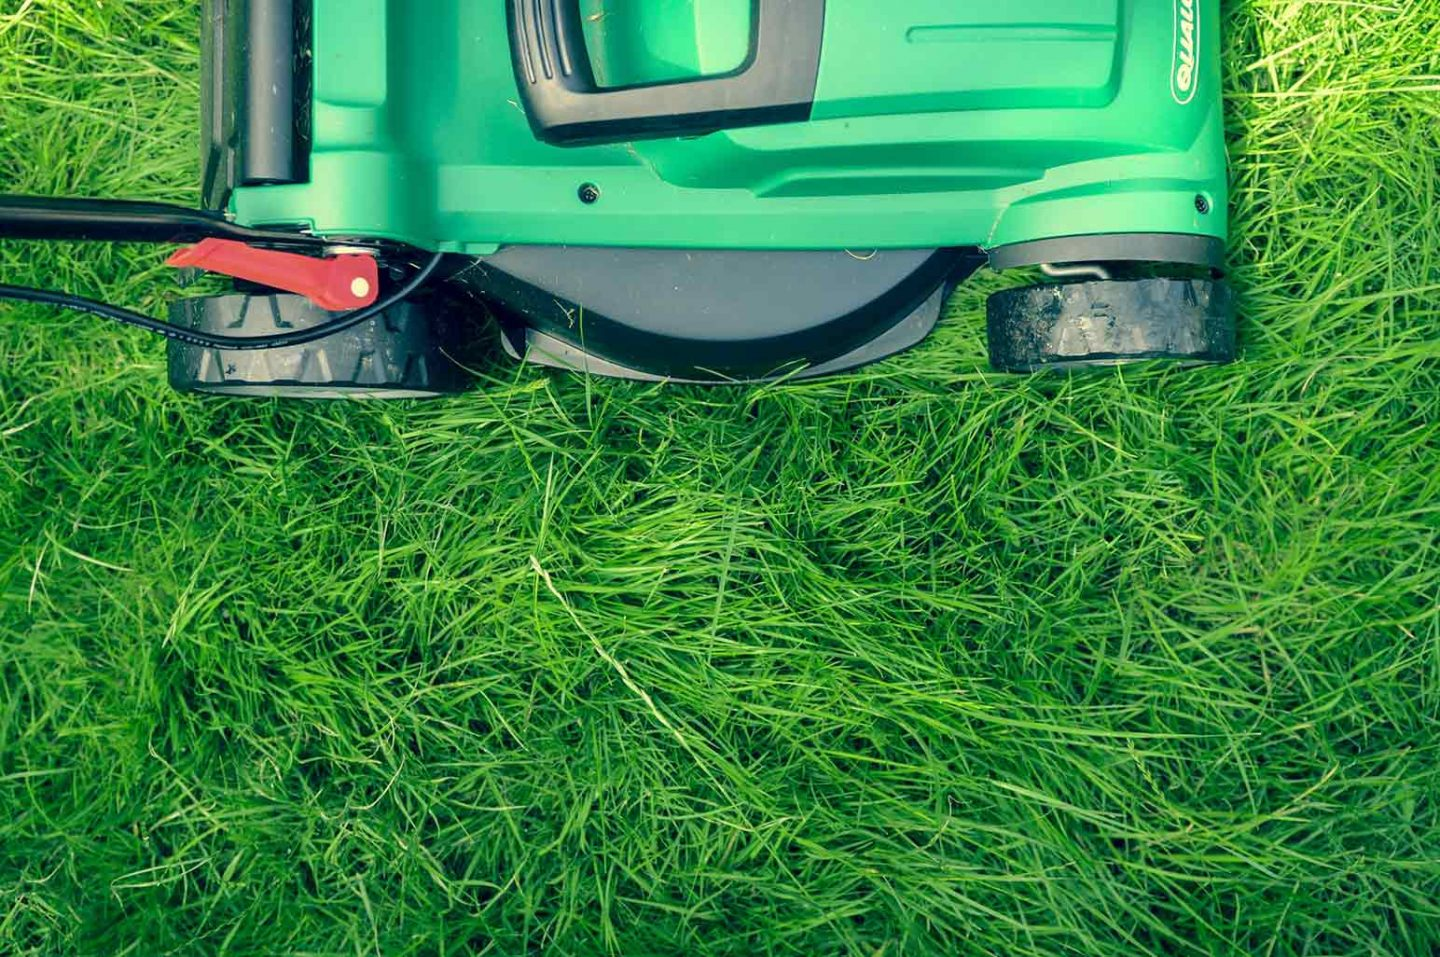 Top Things to Look for When Shopping for a Mower